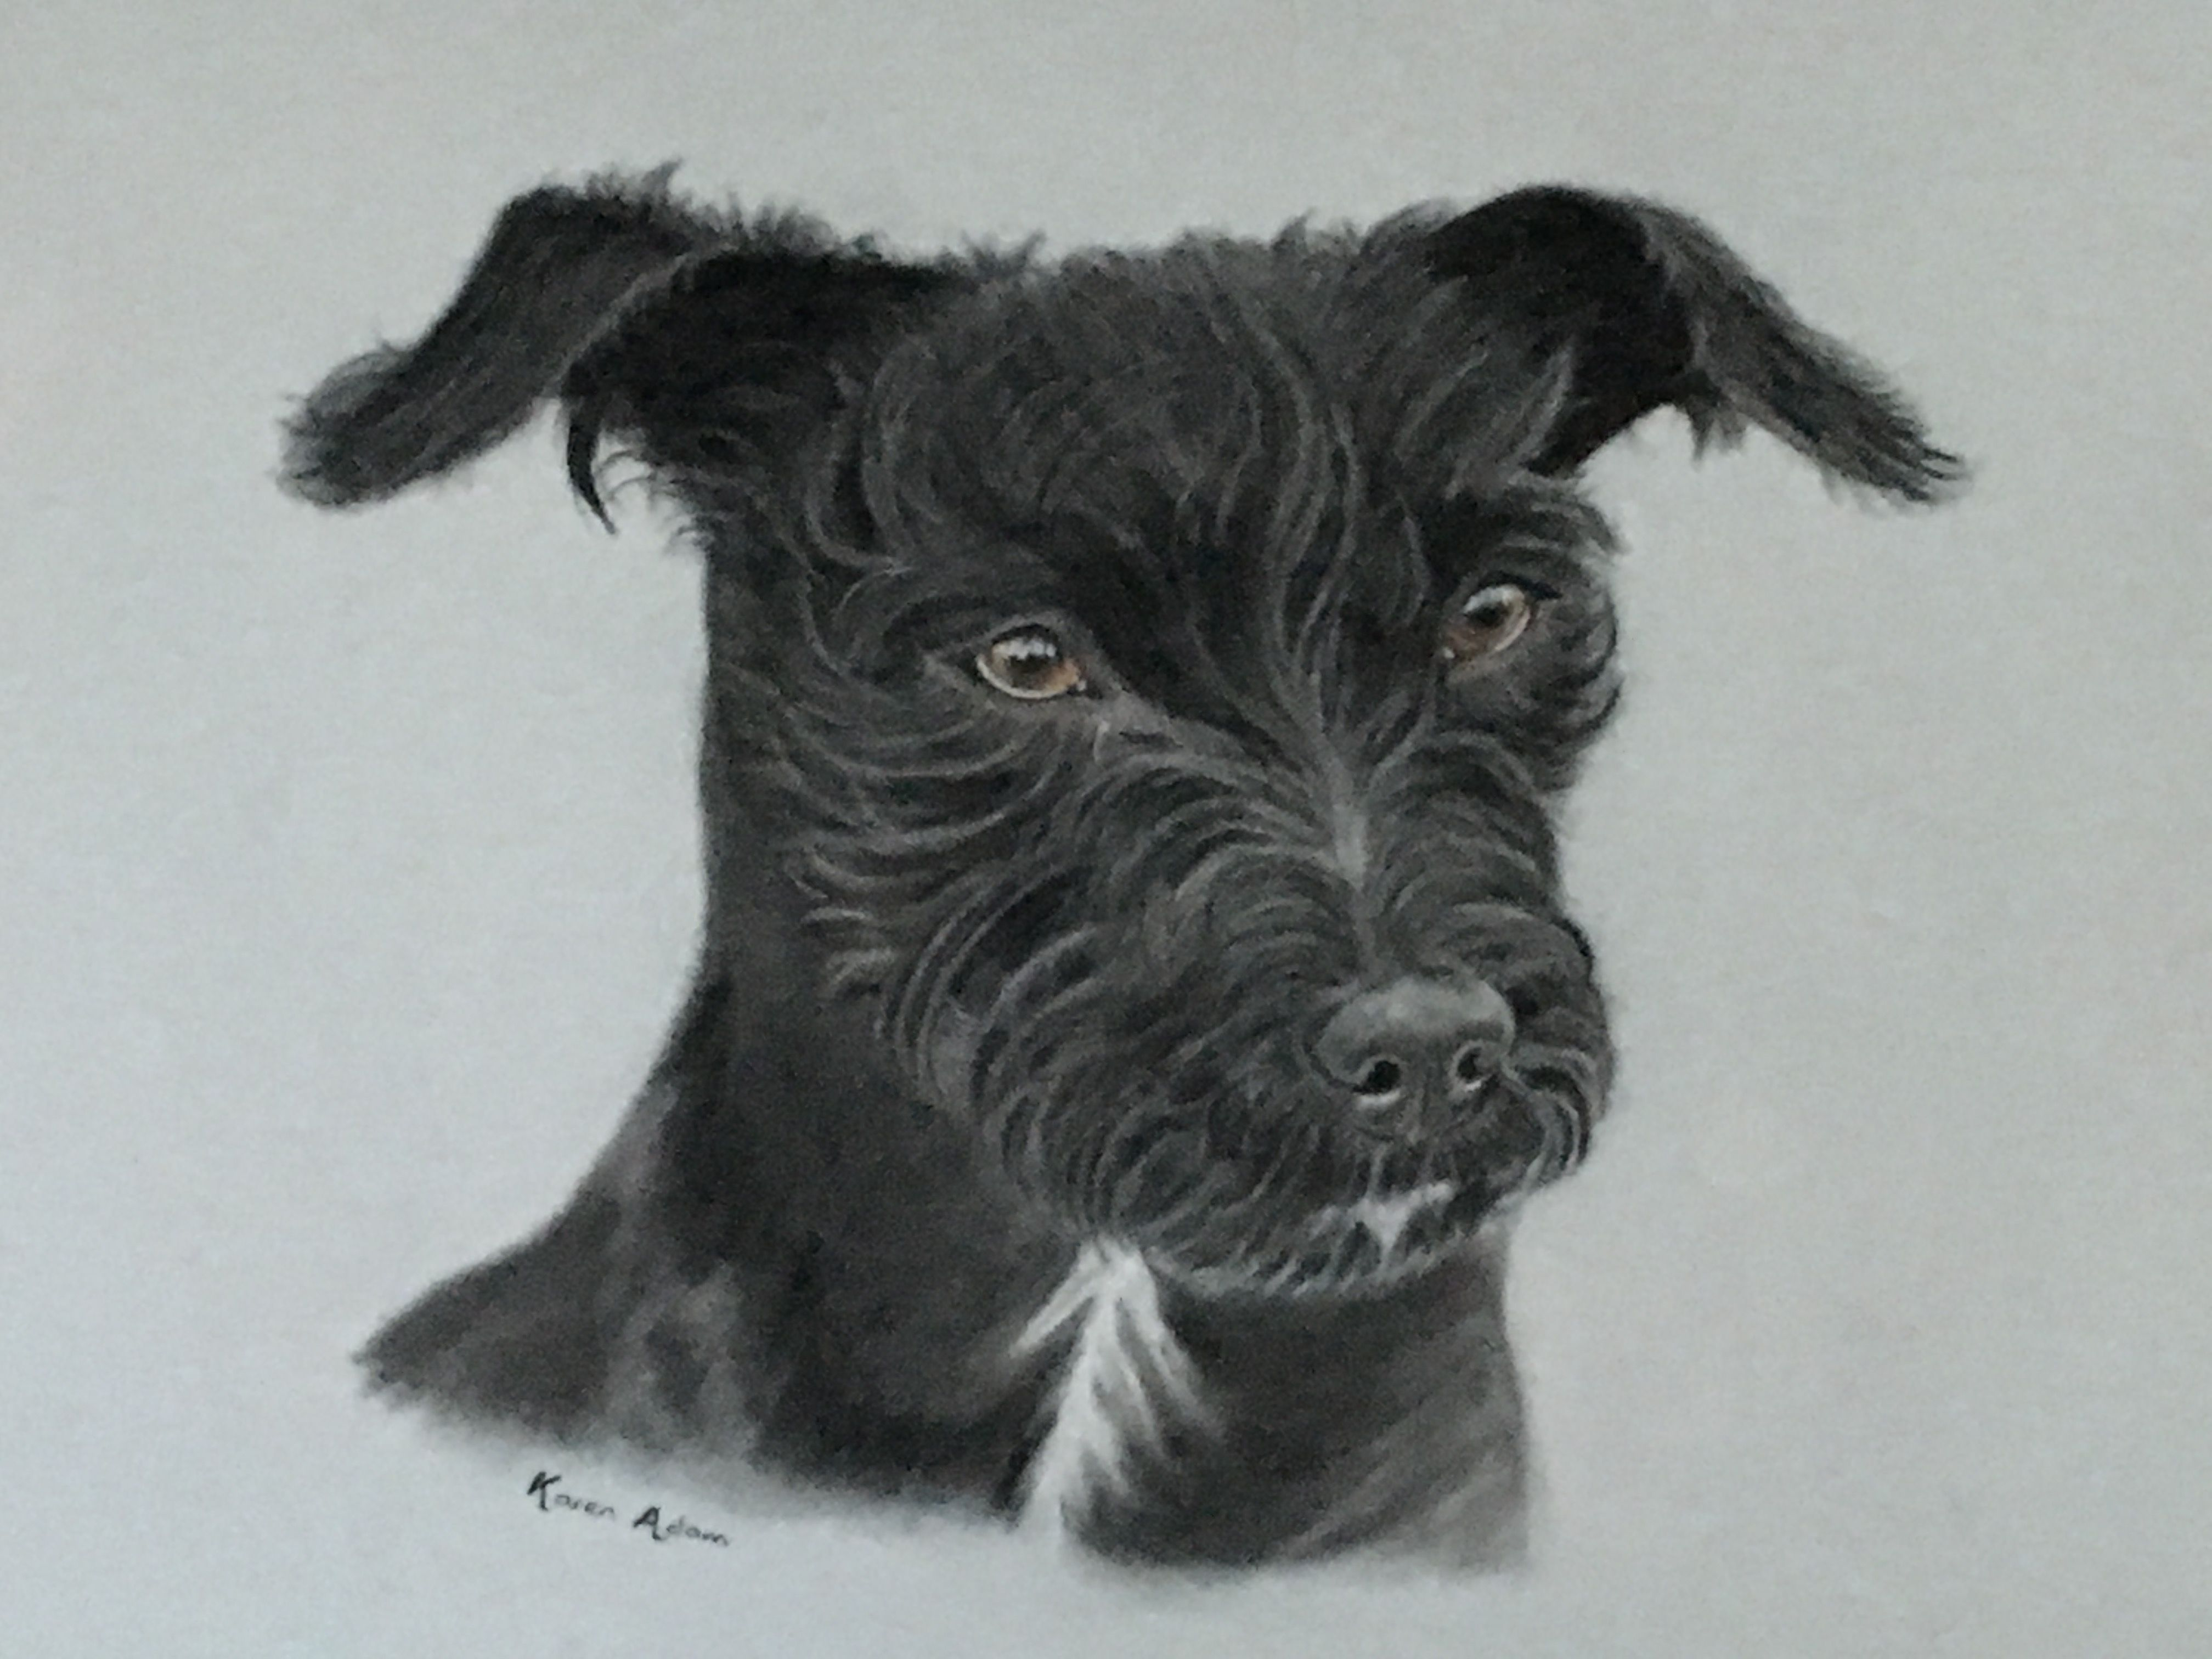 Pin by Lim Soo Peng on Karen adam pet portraits Dog